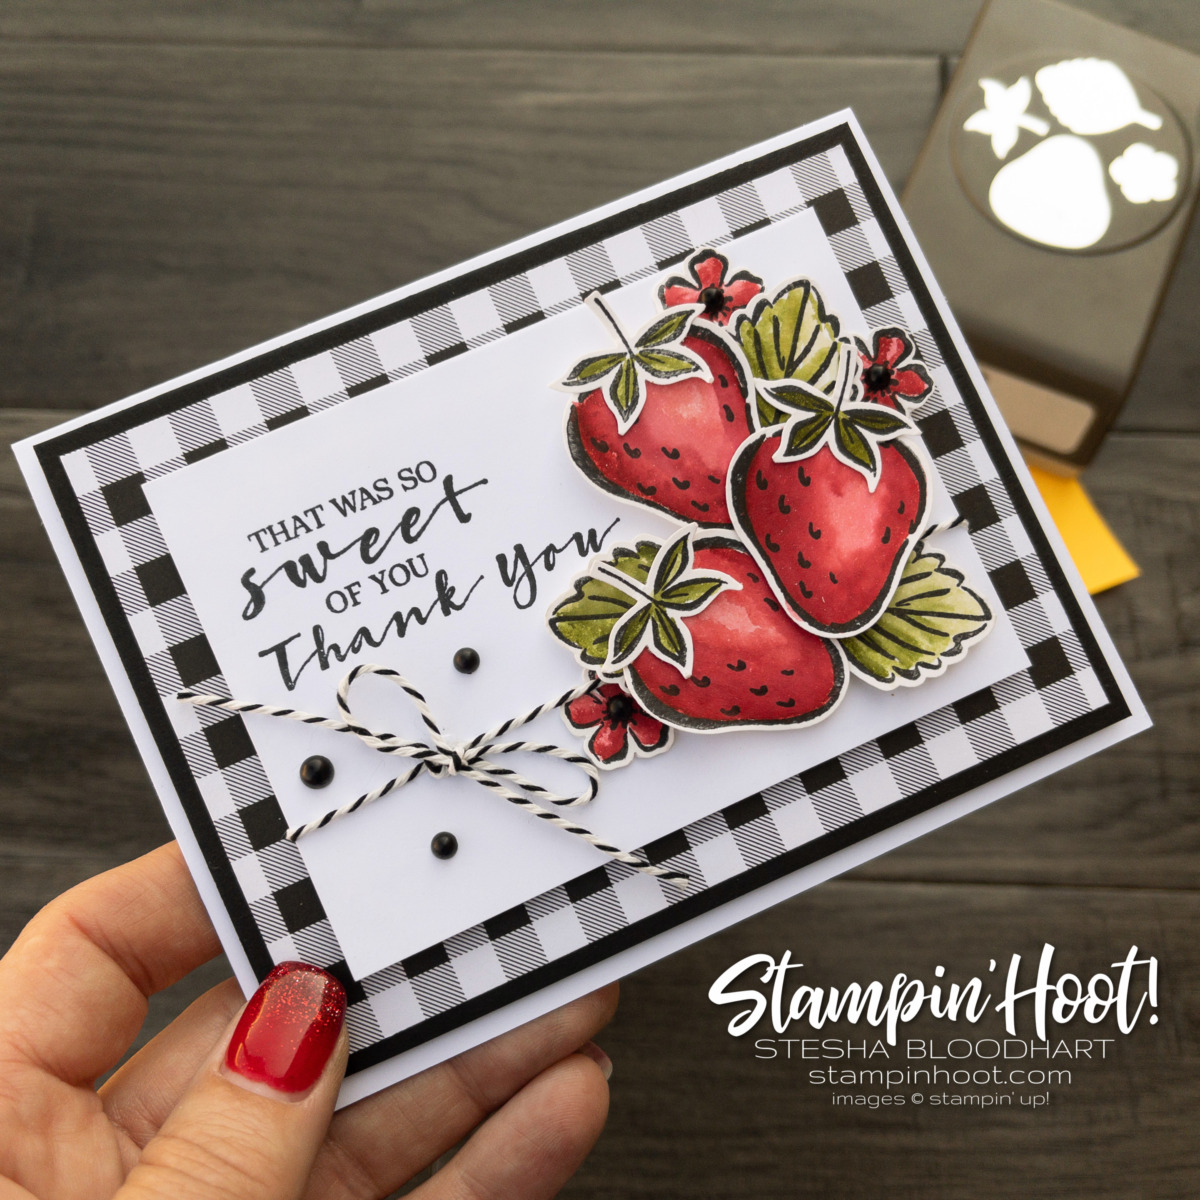 Thank You card using the Sweet Strawberry Bundle by Stampin' Up! Card by Stesha Bloodhart, Stampin' Hoot!